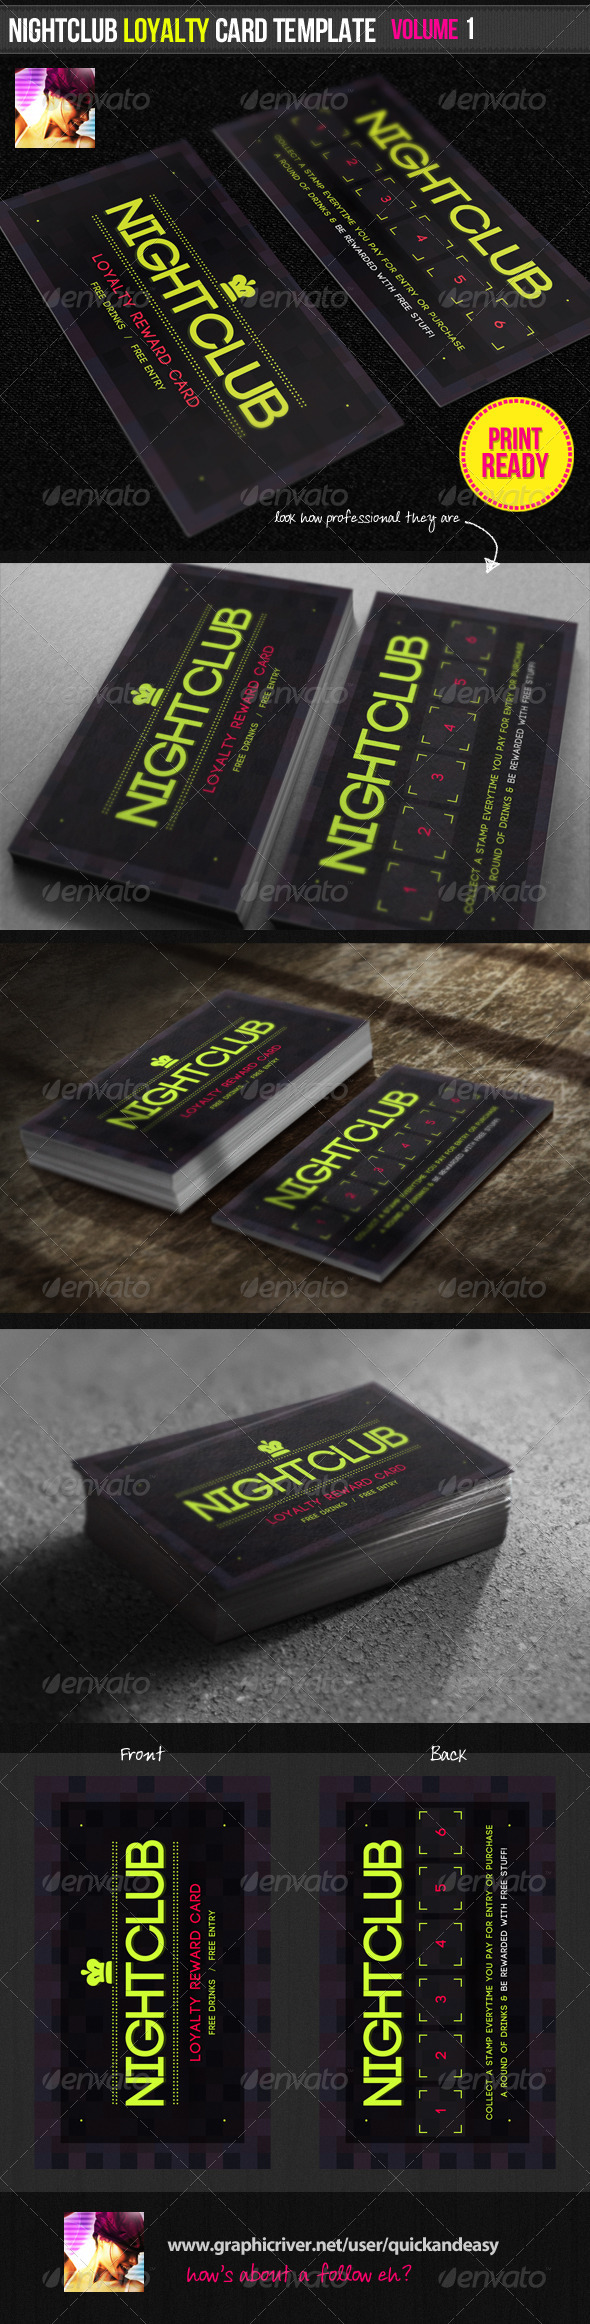 nightclub loyalty card template graphicriver. Black Bedroom Furniture Sets. Home Design Ideas